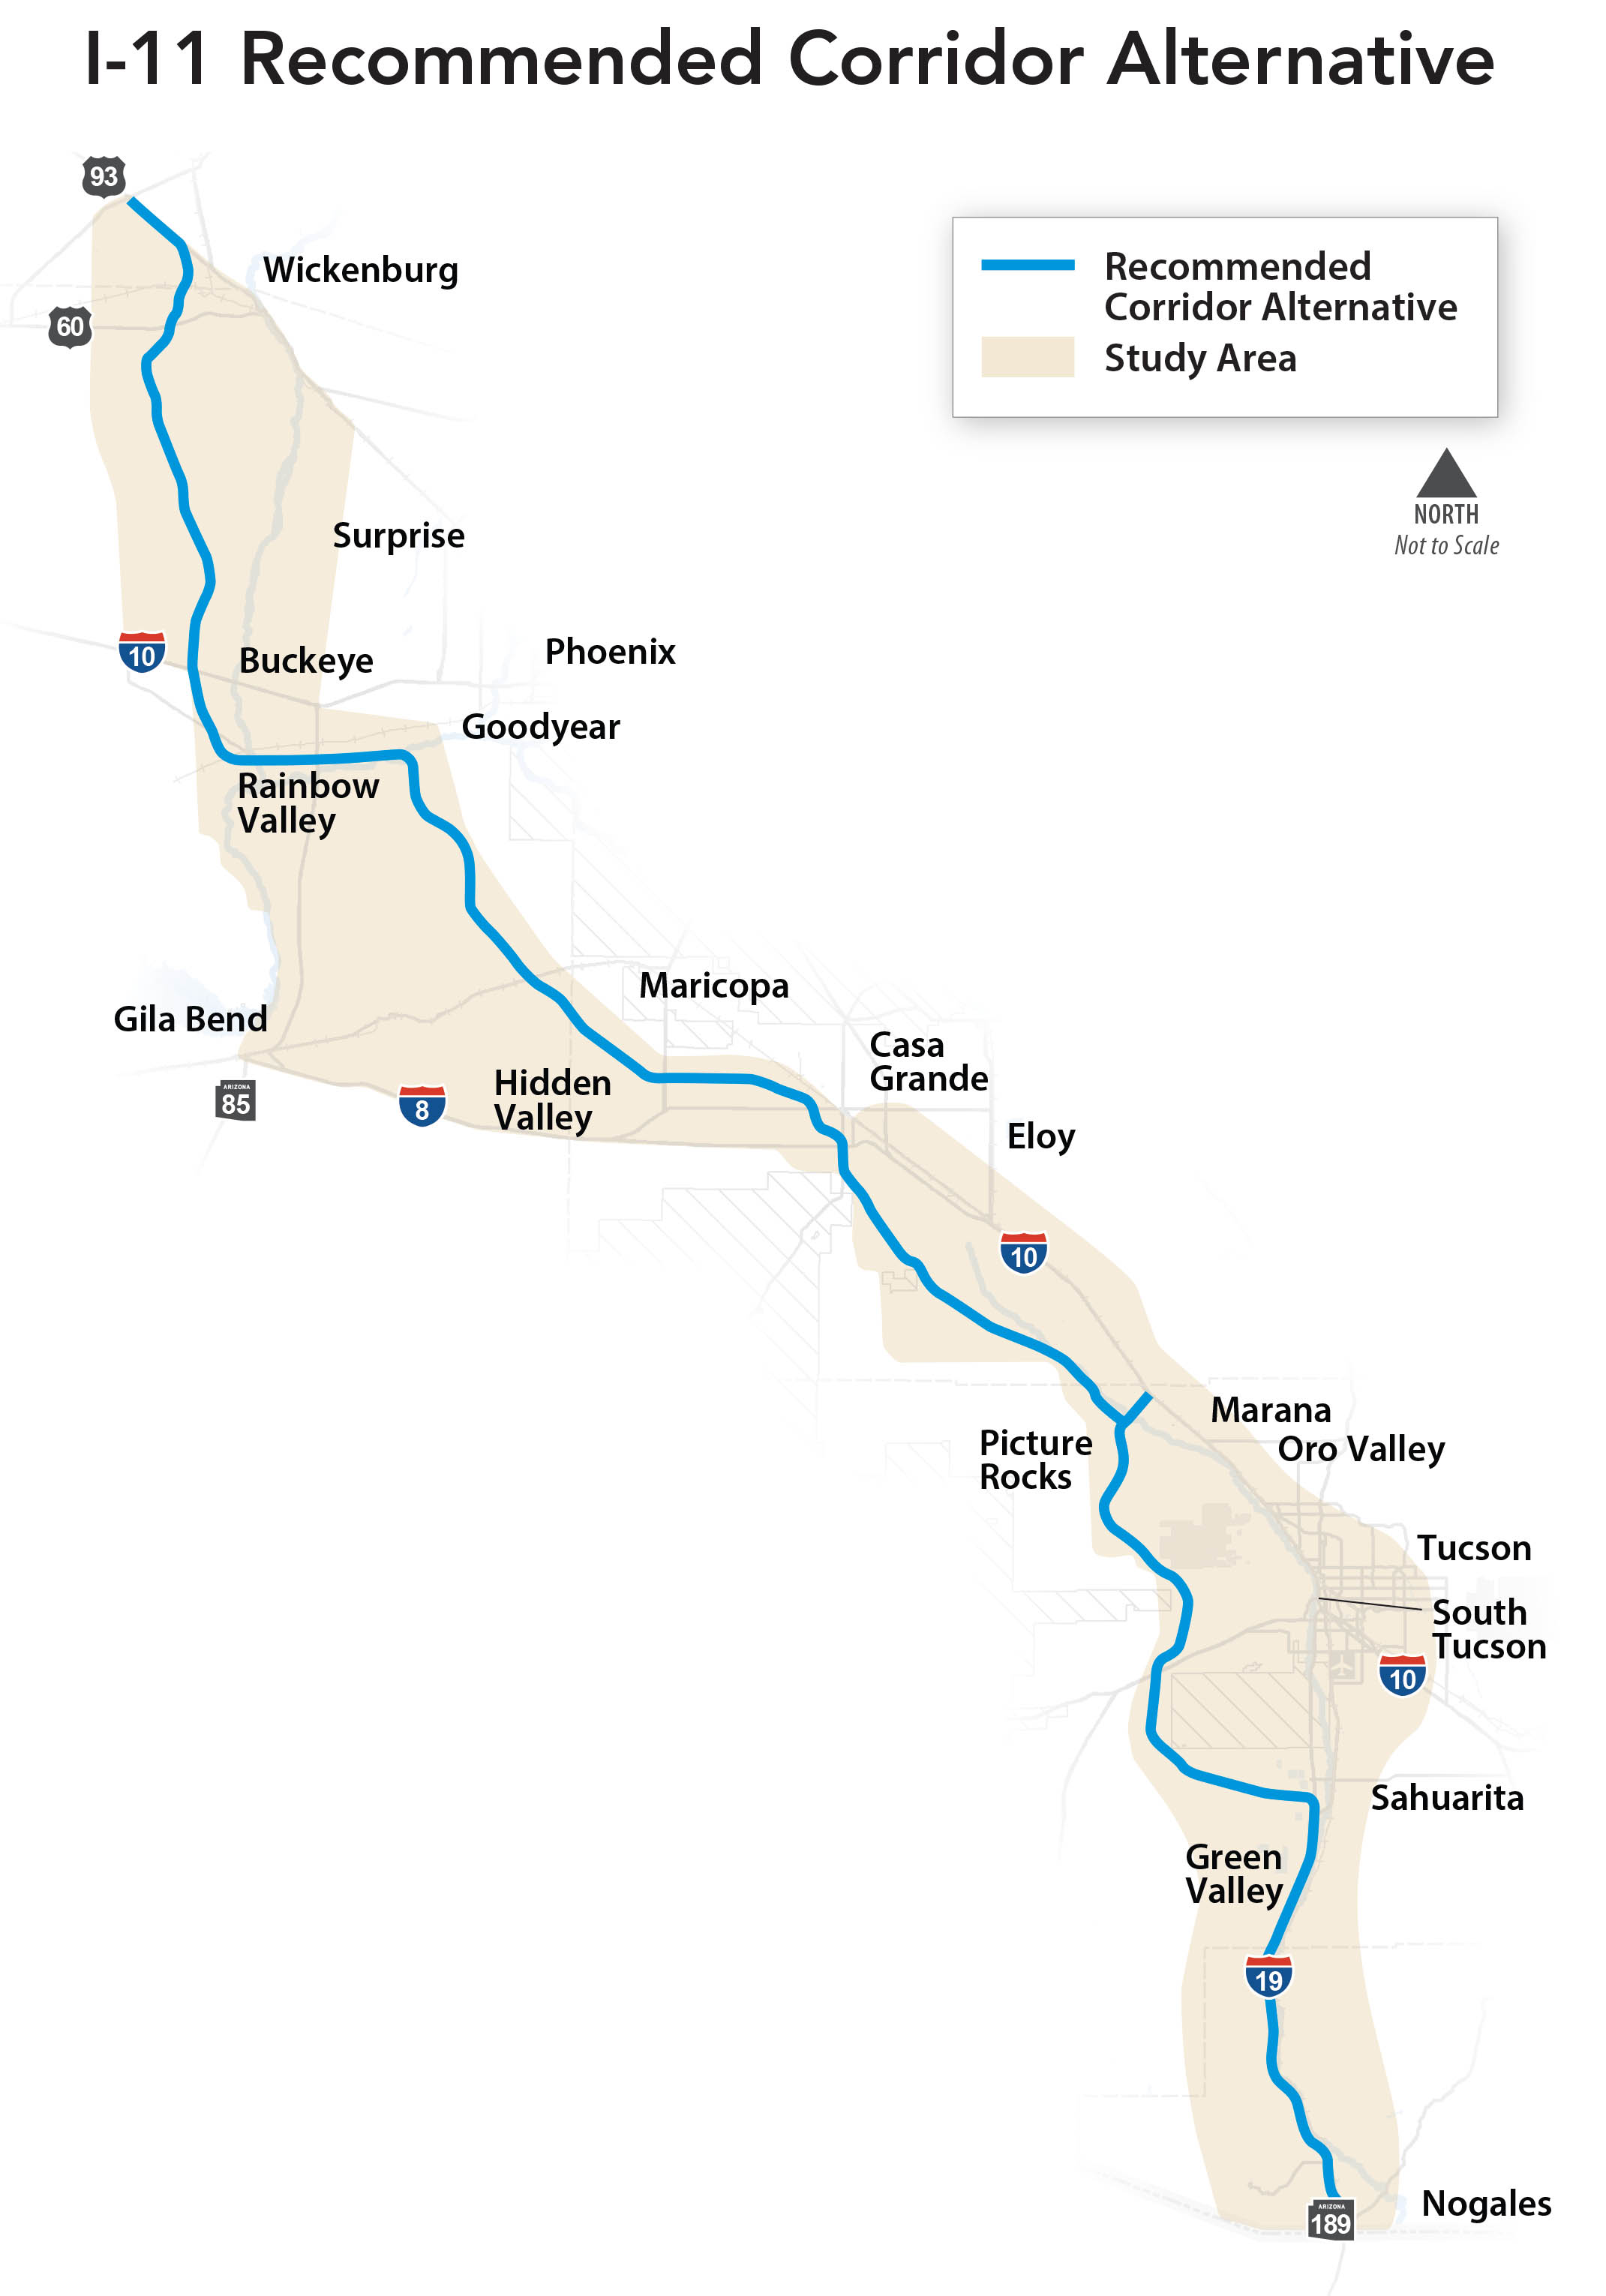 I-11 route